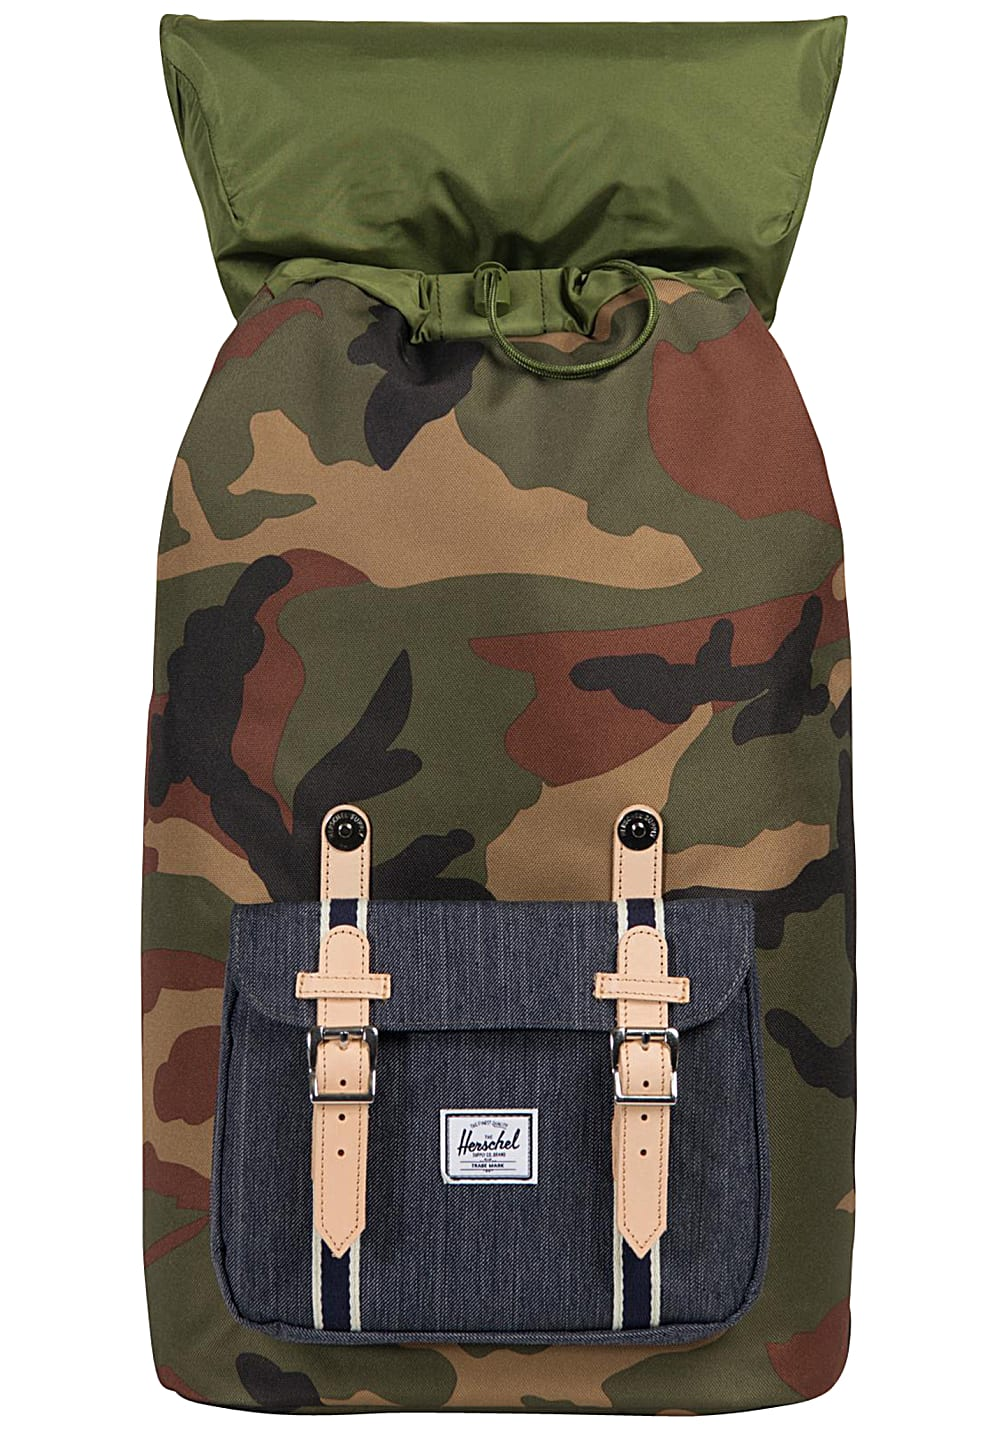 405c00410f Herschel SUPPLY CO Little America 25L - Backpack - Camo - Planet Sports